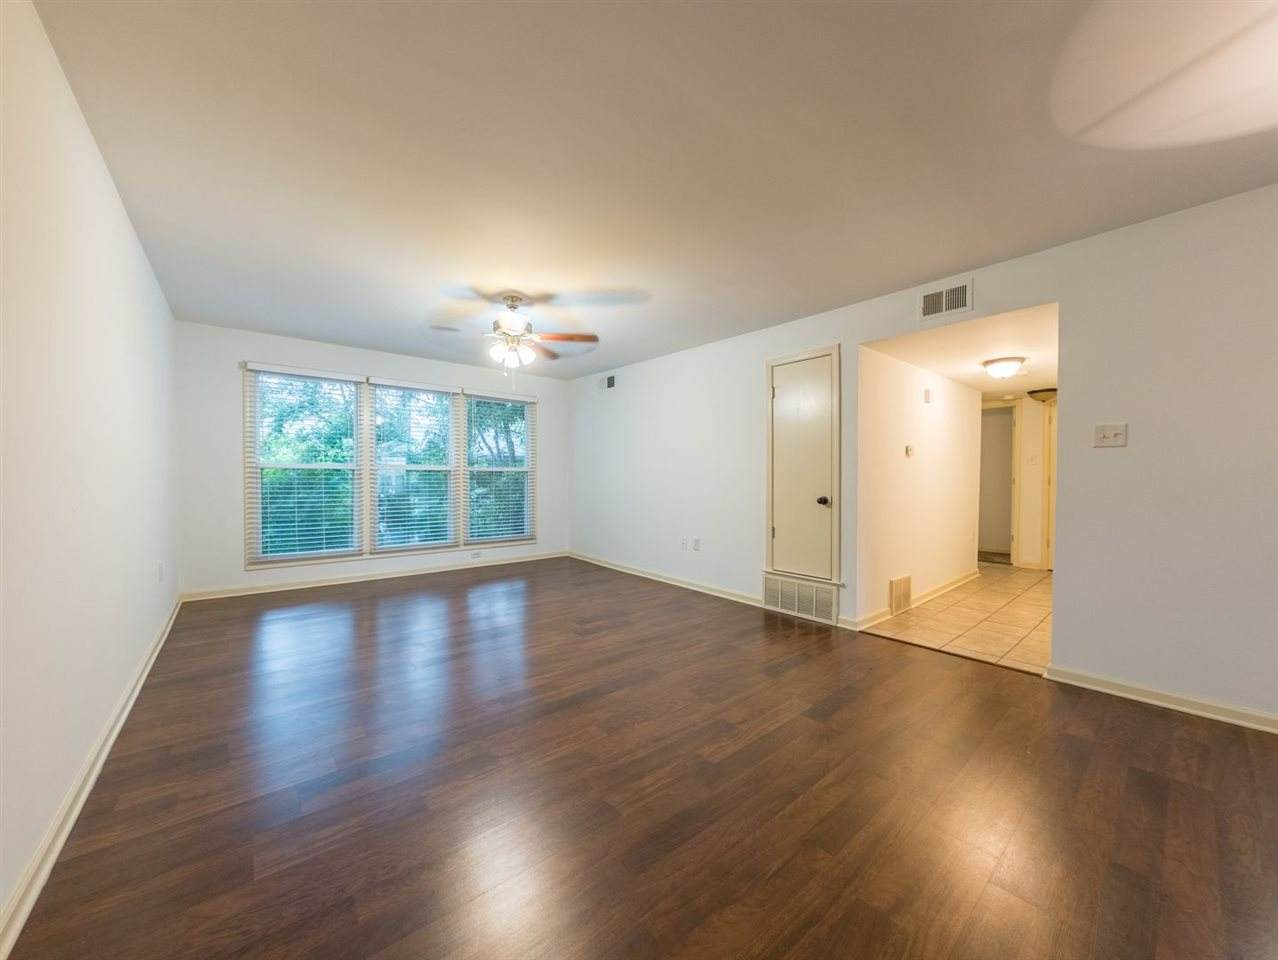 220 Mclean Blvd - Photo 1